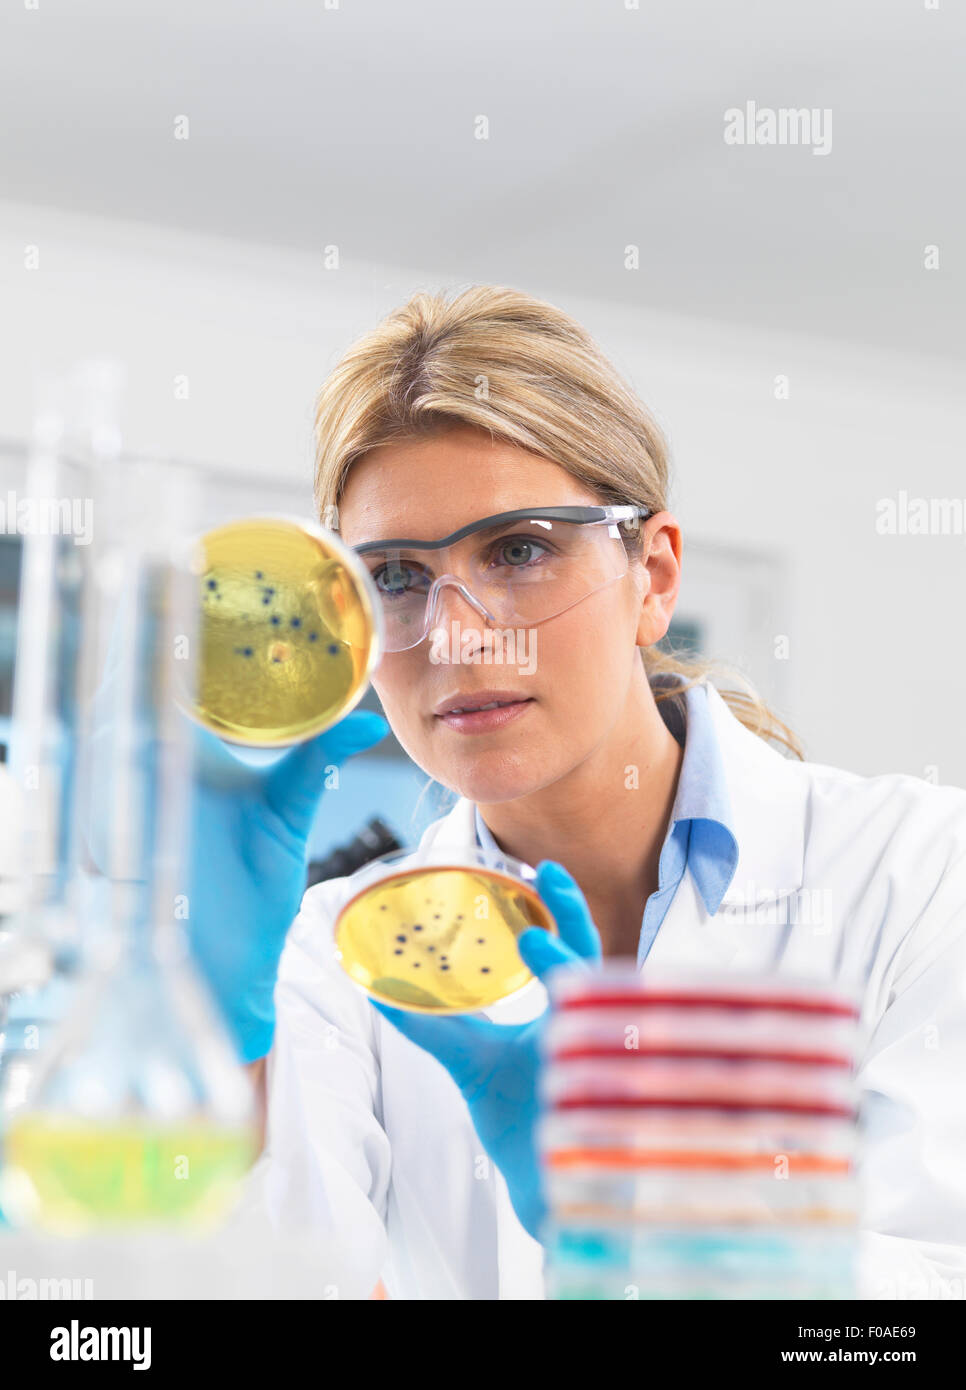 Female technician viewing agar (culture medium) plates with bacteria in a laboratory - Stock Image